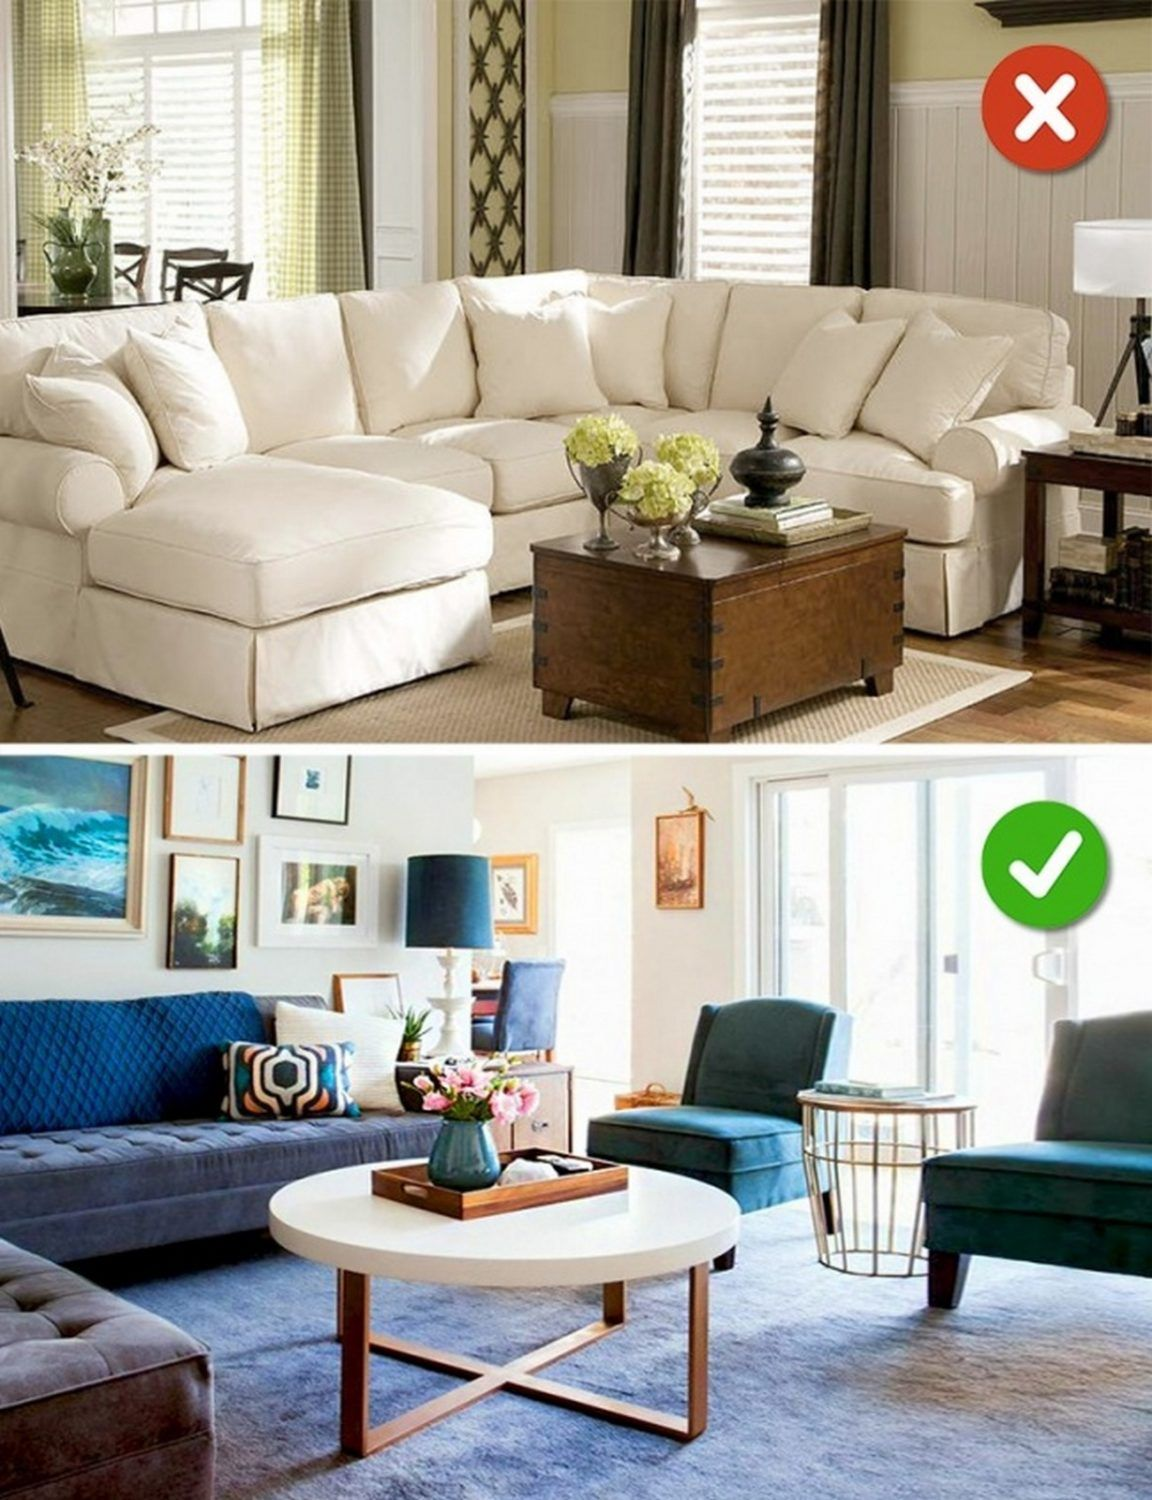 5 Living Room Design Mistakes and Solutions on How to Fix Them